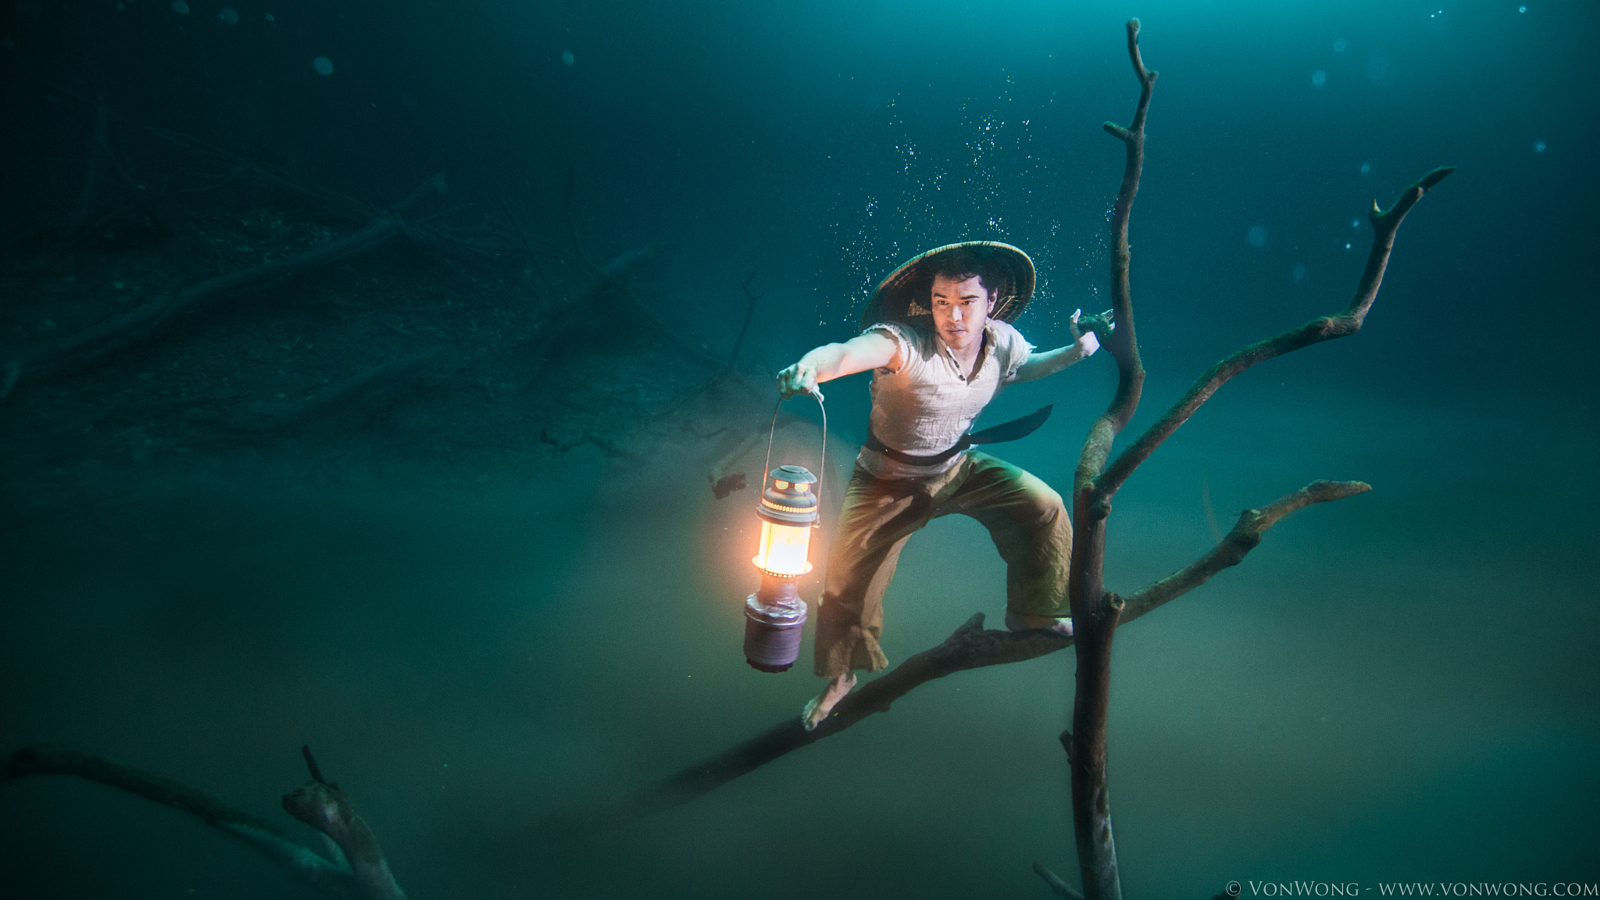 Photo Shoot on the Banks of a Toxic Underwater River